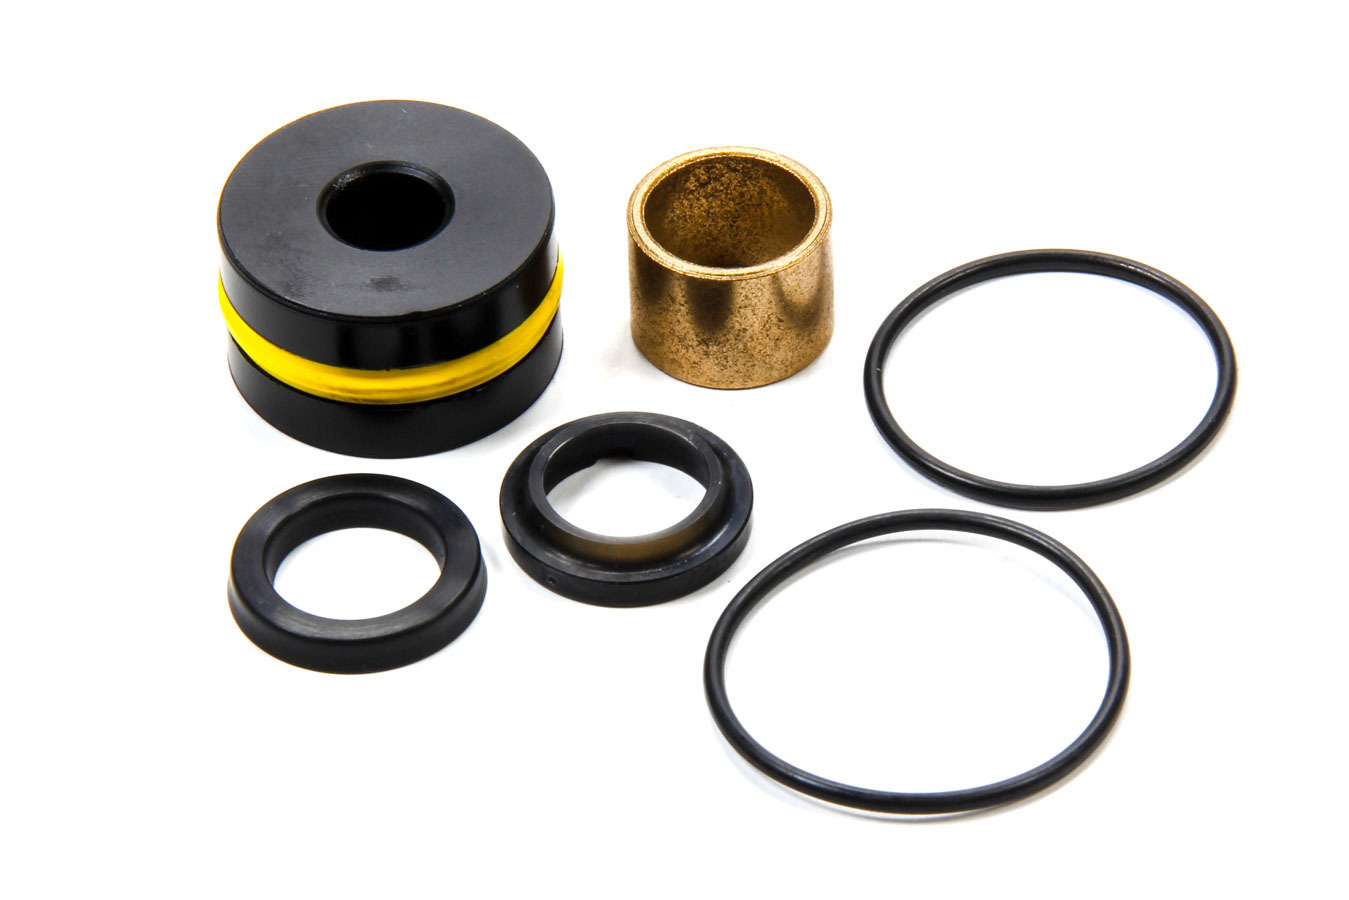 Woodward Machine R150 Power Assist Cylinder Seal, Woodward Double Acting Cylinder Assembly, Kit